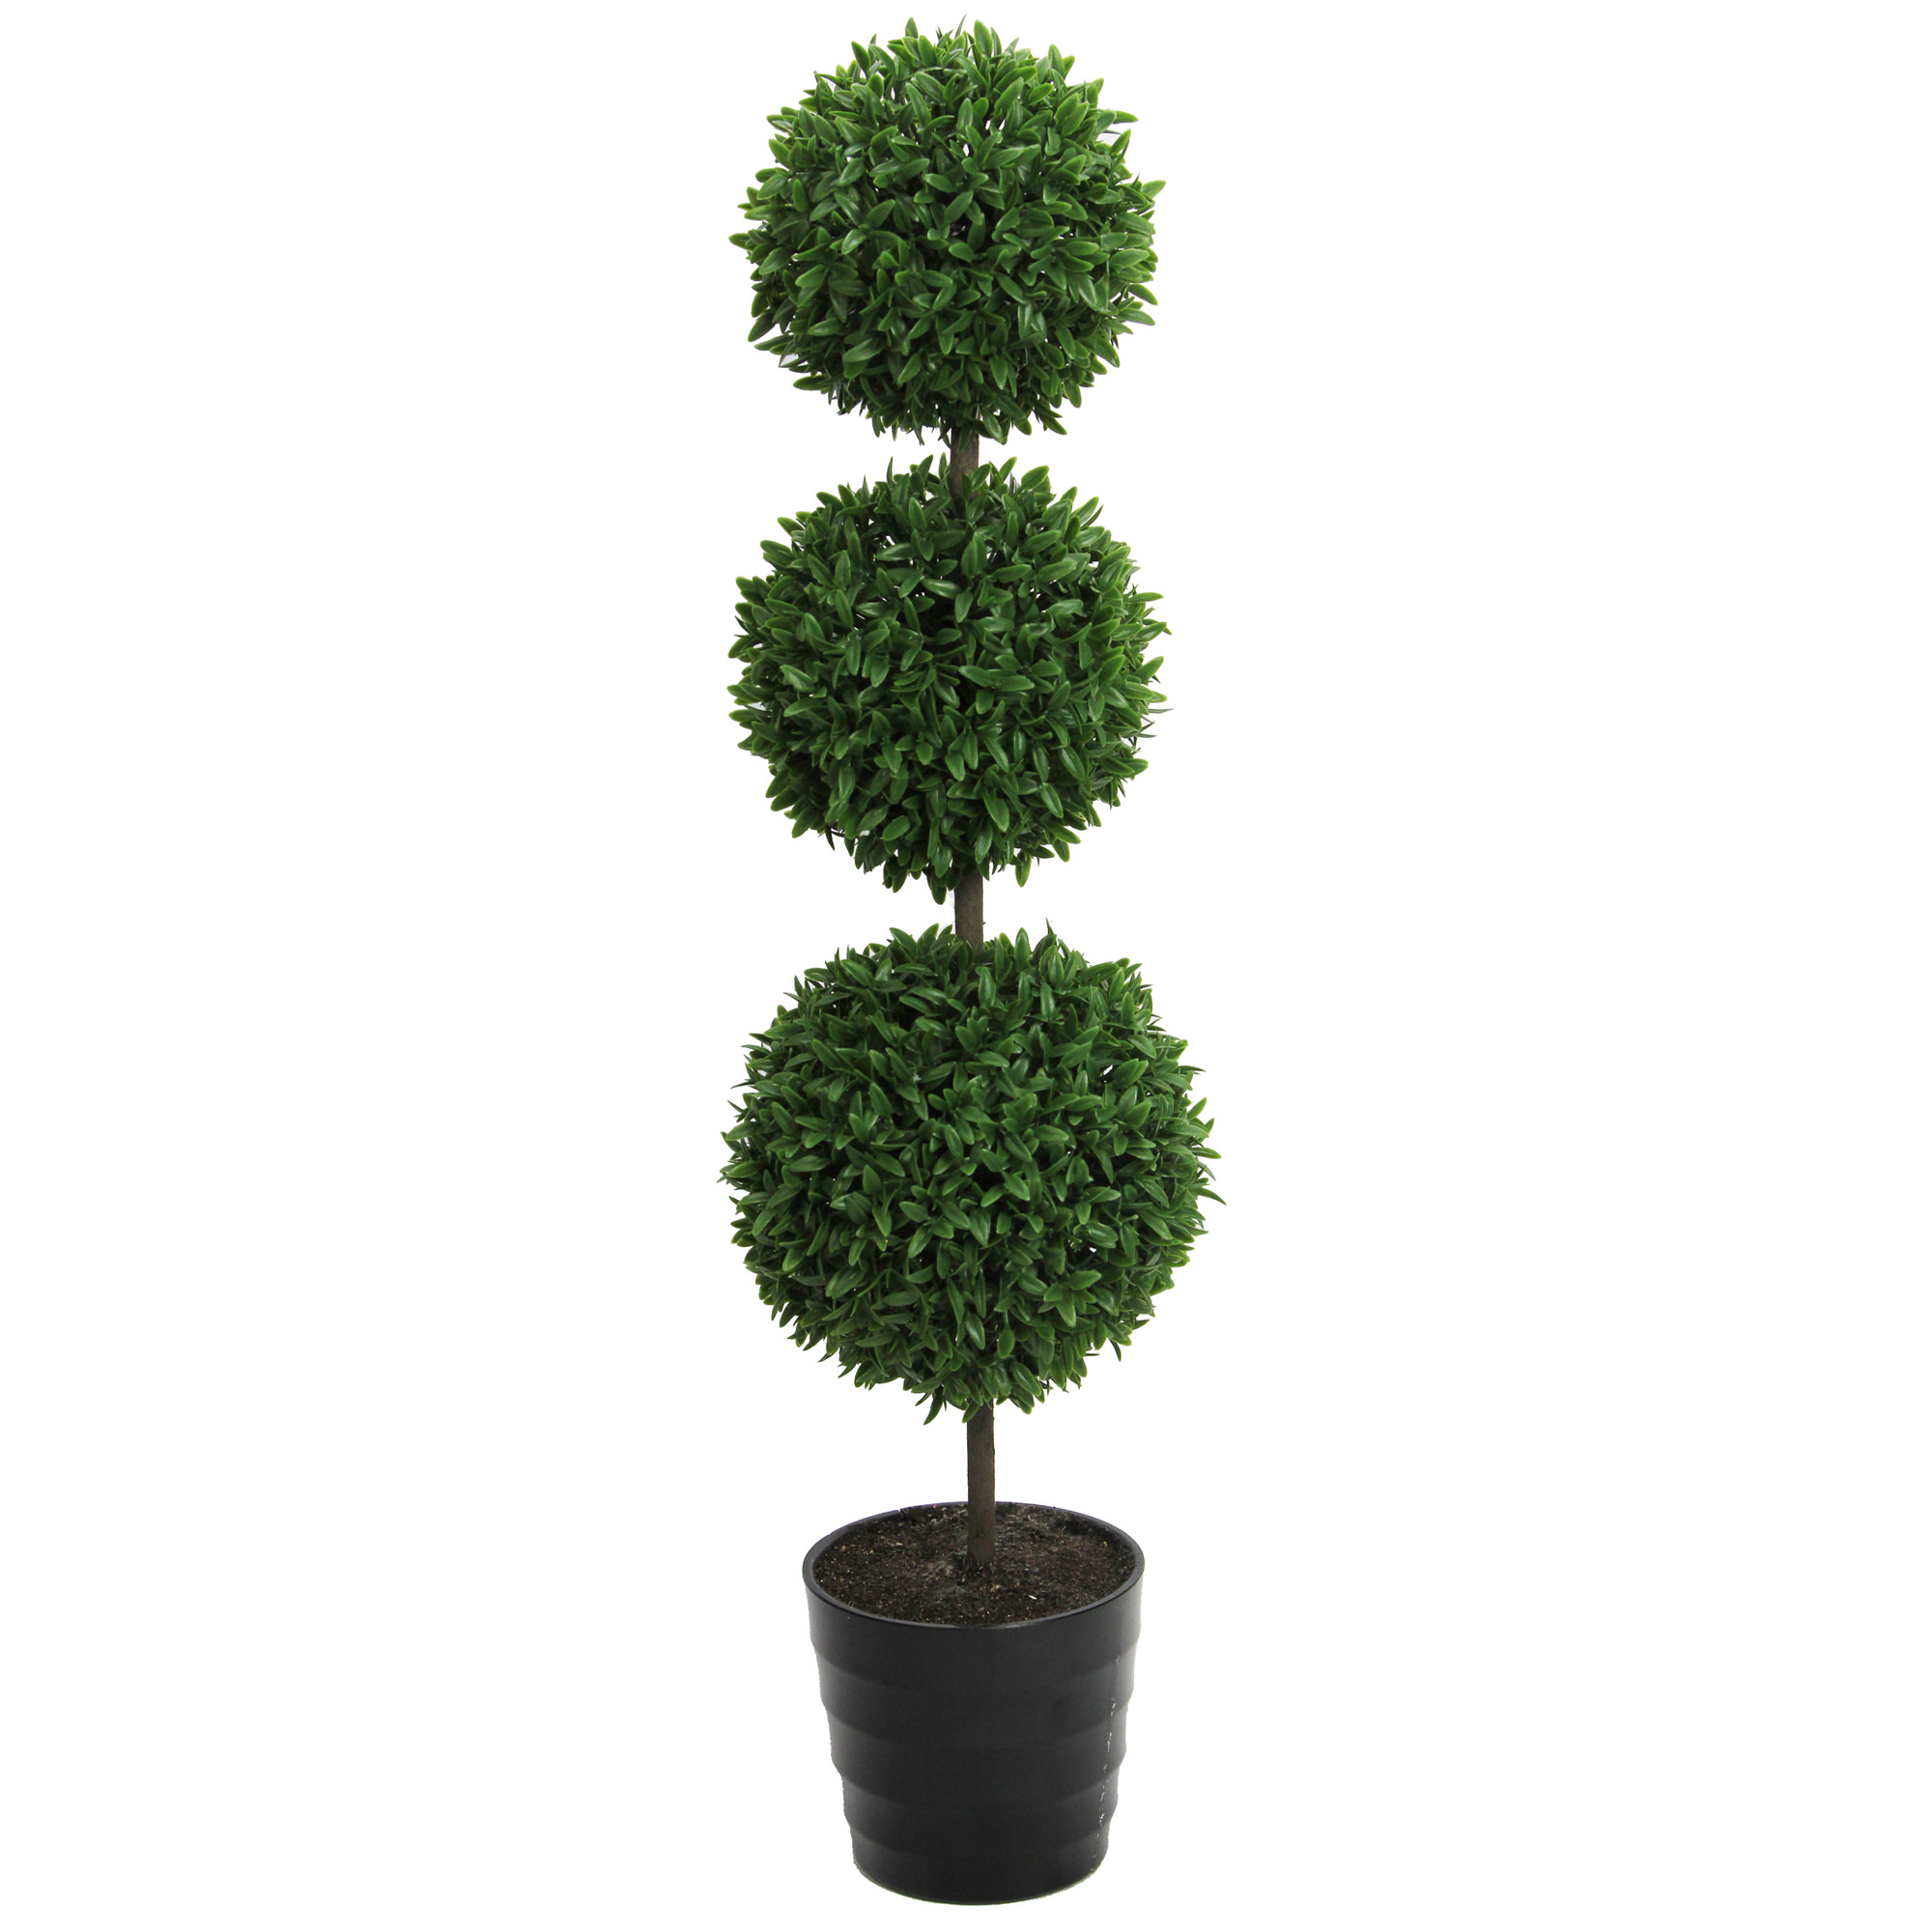 "Admired By Nature 24"" Tall Artificial Tabletop English Boxwood Triple Ball Shaped Topiary Plant in Plastic Pot, Green"